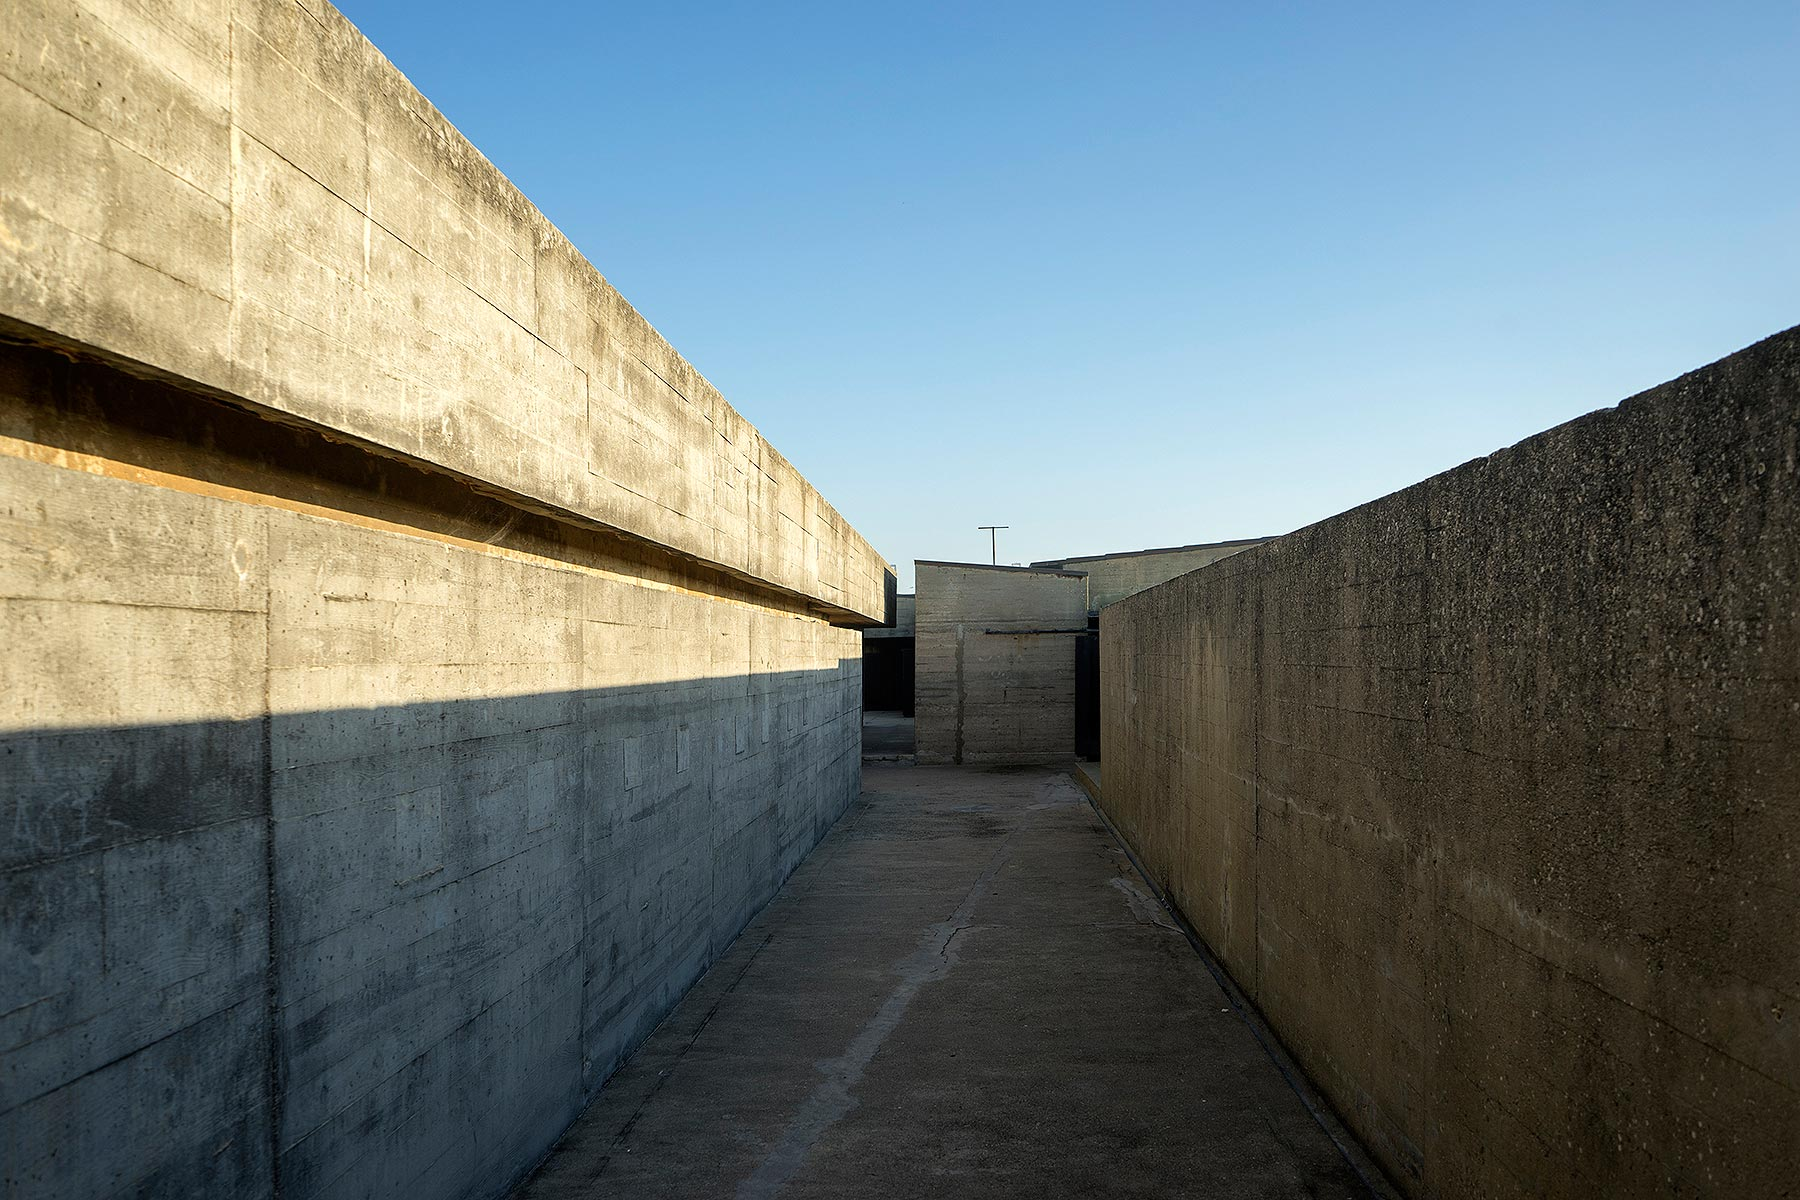 Leça Swimming Pools, Matosinhos, Porto, Portugal, Alvaro Siza, 1966